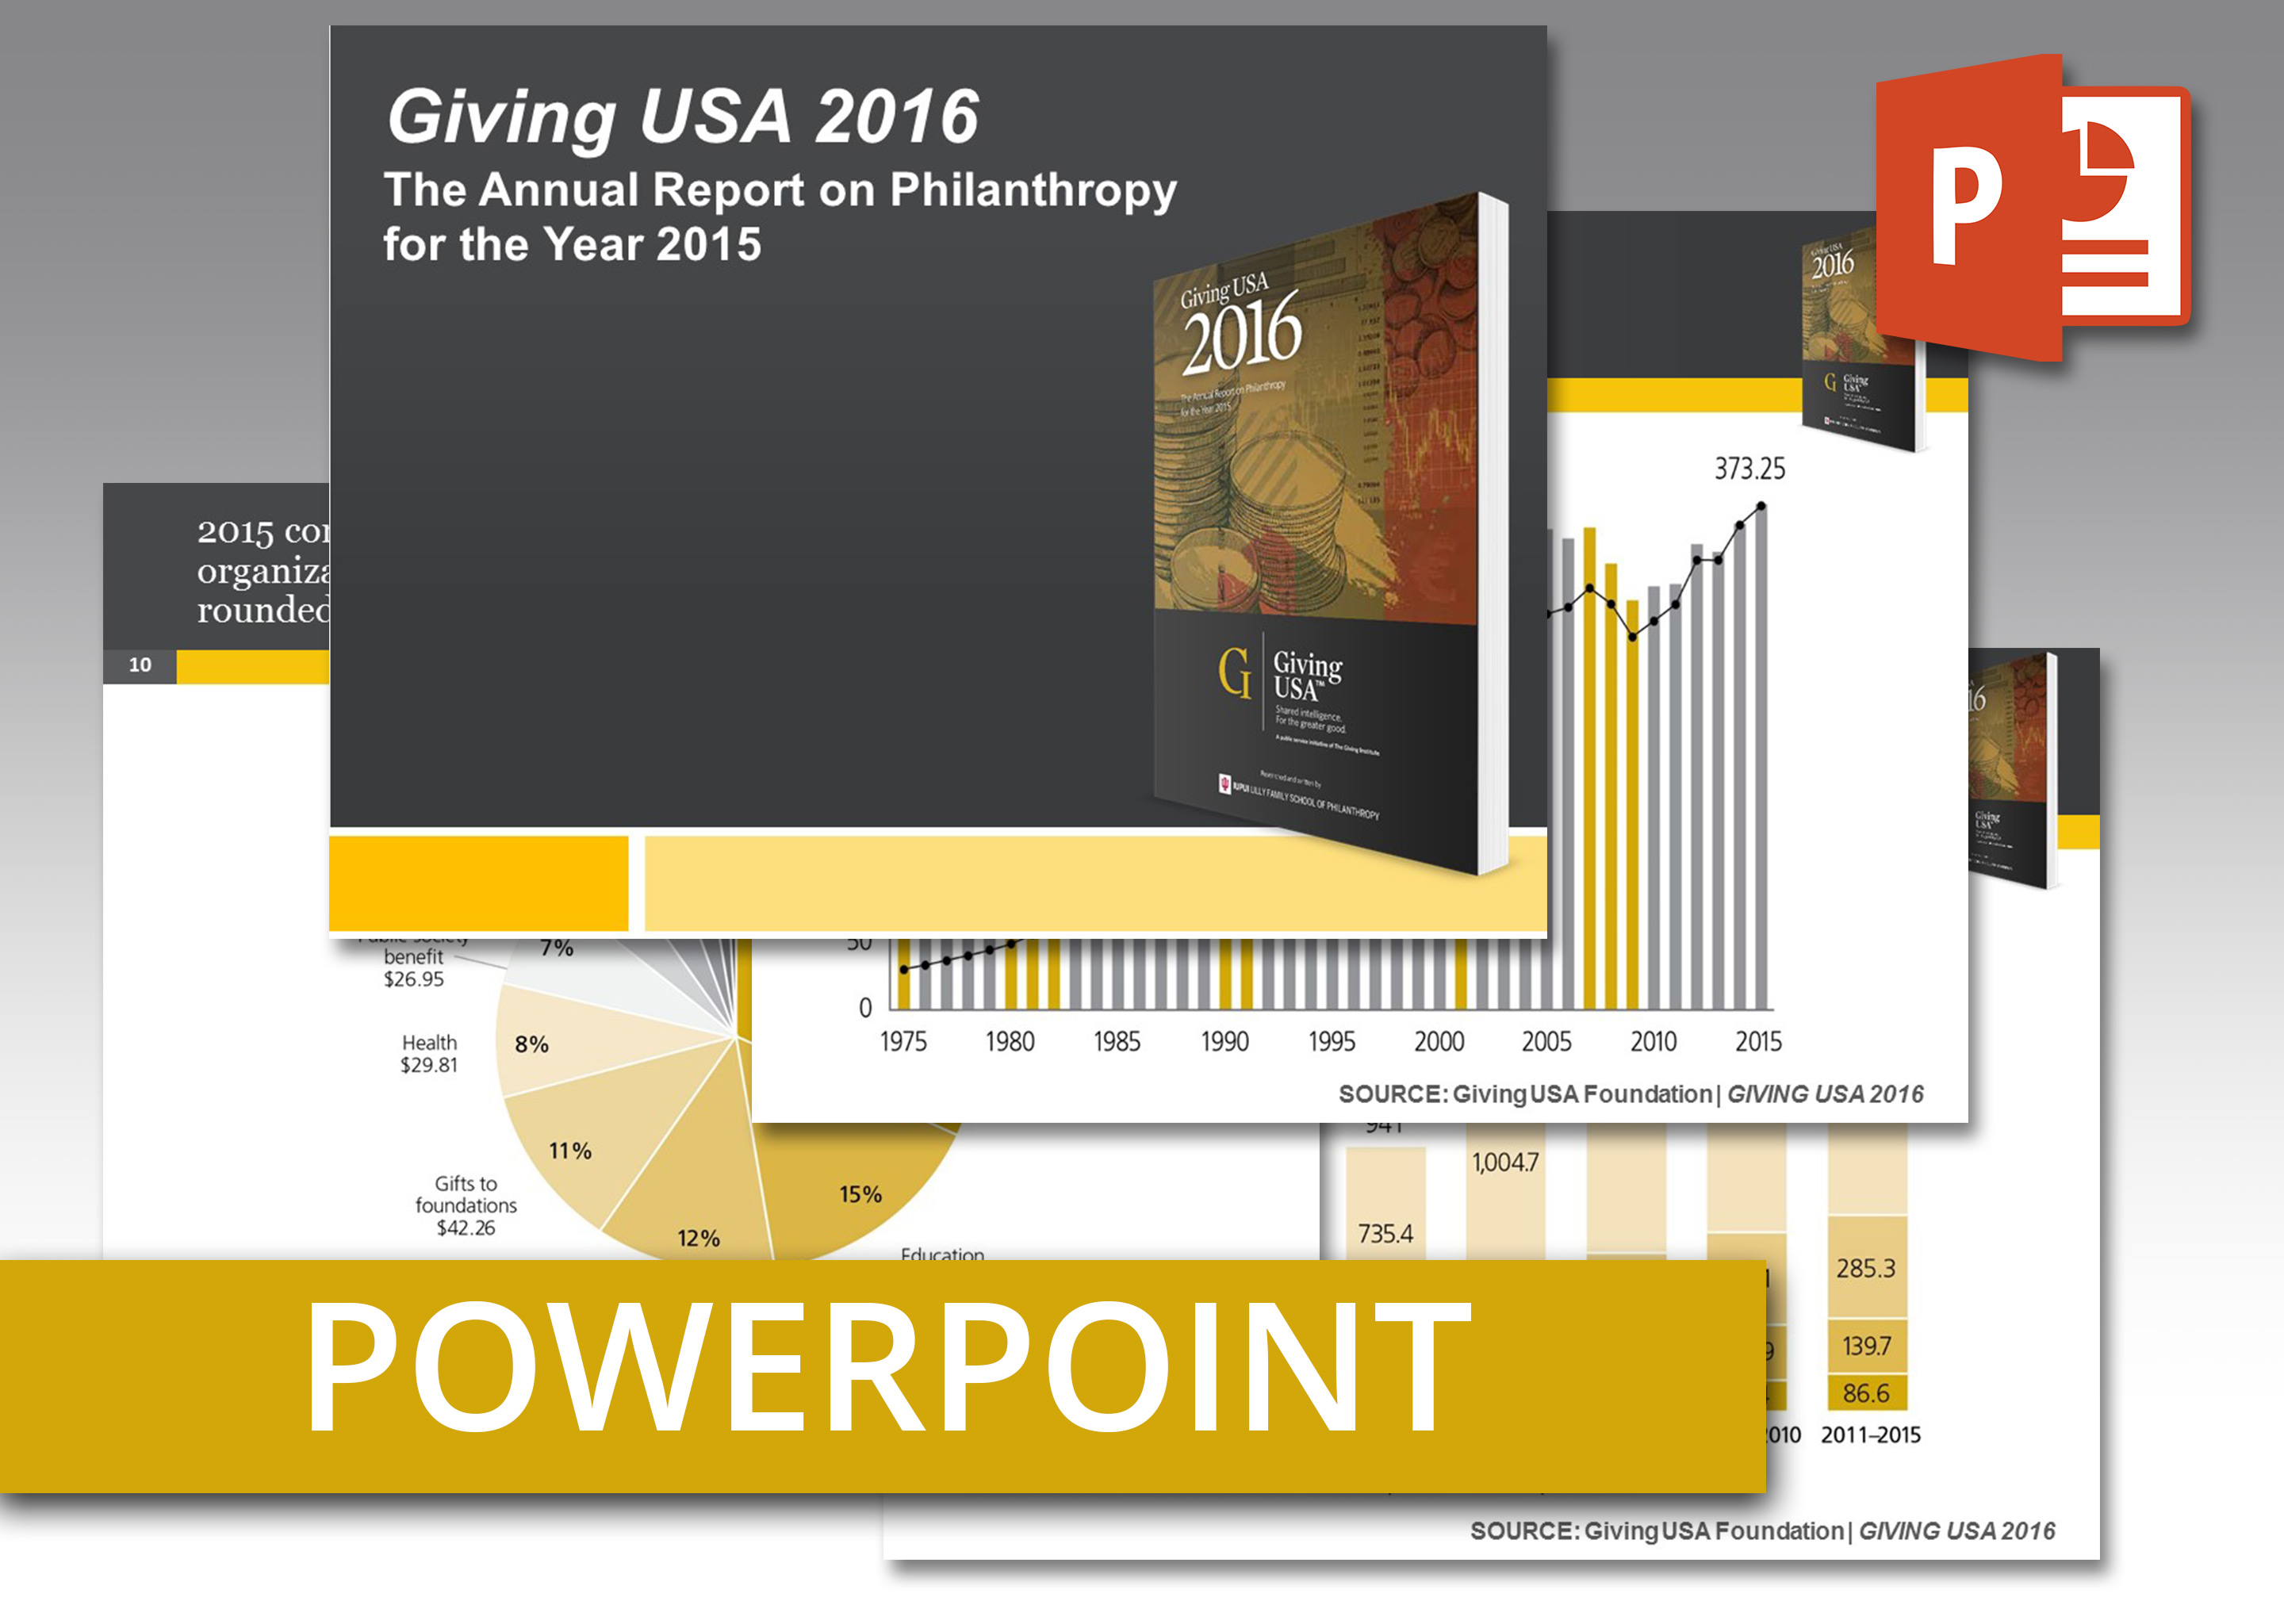 Coolmathgamesus  Marvellous Giving Usa  Powerpoint An Easytouse Presentation Of Report  With Great Giving Usa  Powerpoint An Easytouse Presentation Of Report Findings Including Talking Points With Extraordinary Powerpoint Templates Timeline Also Free Powerpoint Templates For Business In Addition Best Business Powerpoint Templates And Weathering Erosion And Deposition Powerpoint As Well As Embed A Video Into Powerpoint Additionally How To Share A Powerpoint Presentation From Givingusaorg With Coolmathgamesus  Great Giving Usa  Powerpoint An Easytouse Presentation Of Report  With Extraordinary Giving Usa  Powerpoint An Easytouse Presentation Of Report Findings Including Talking Points And Marvellous Powerpoint Templates Timeline Also Free Powerpoint Templates For Business In Addition Best Business Powerpoint Templates From Givingusaorg